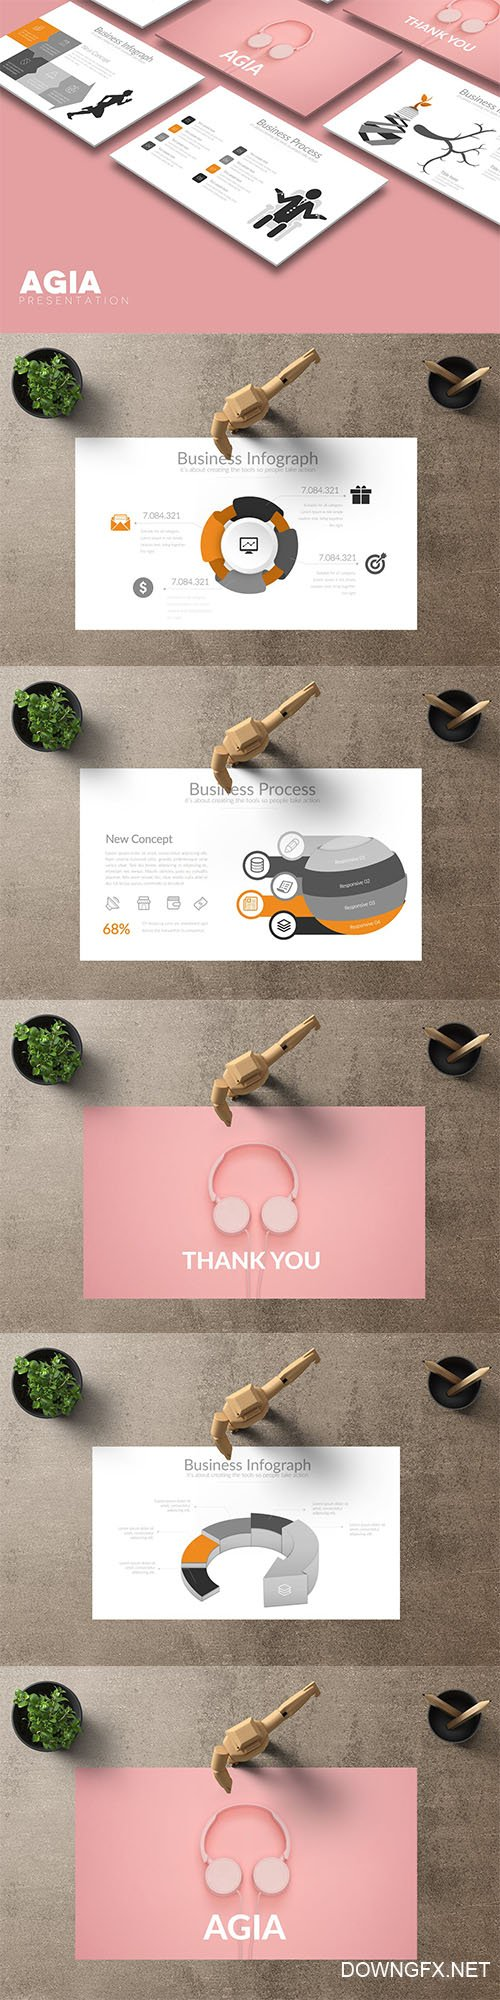 AGIA Powerpoint Template